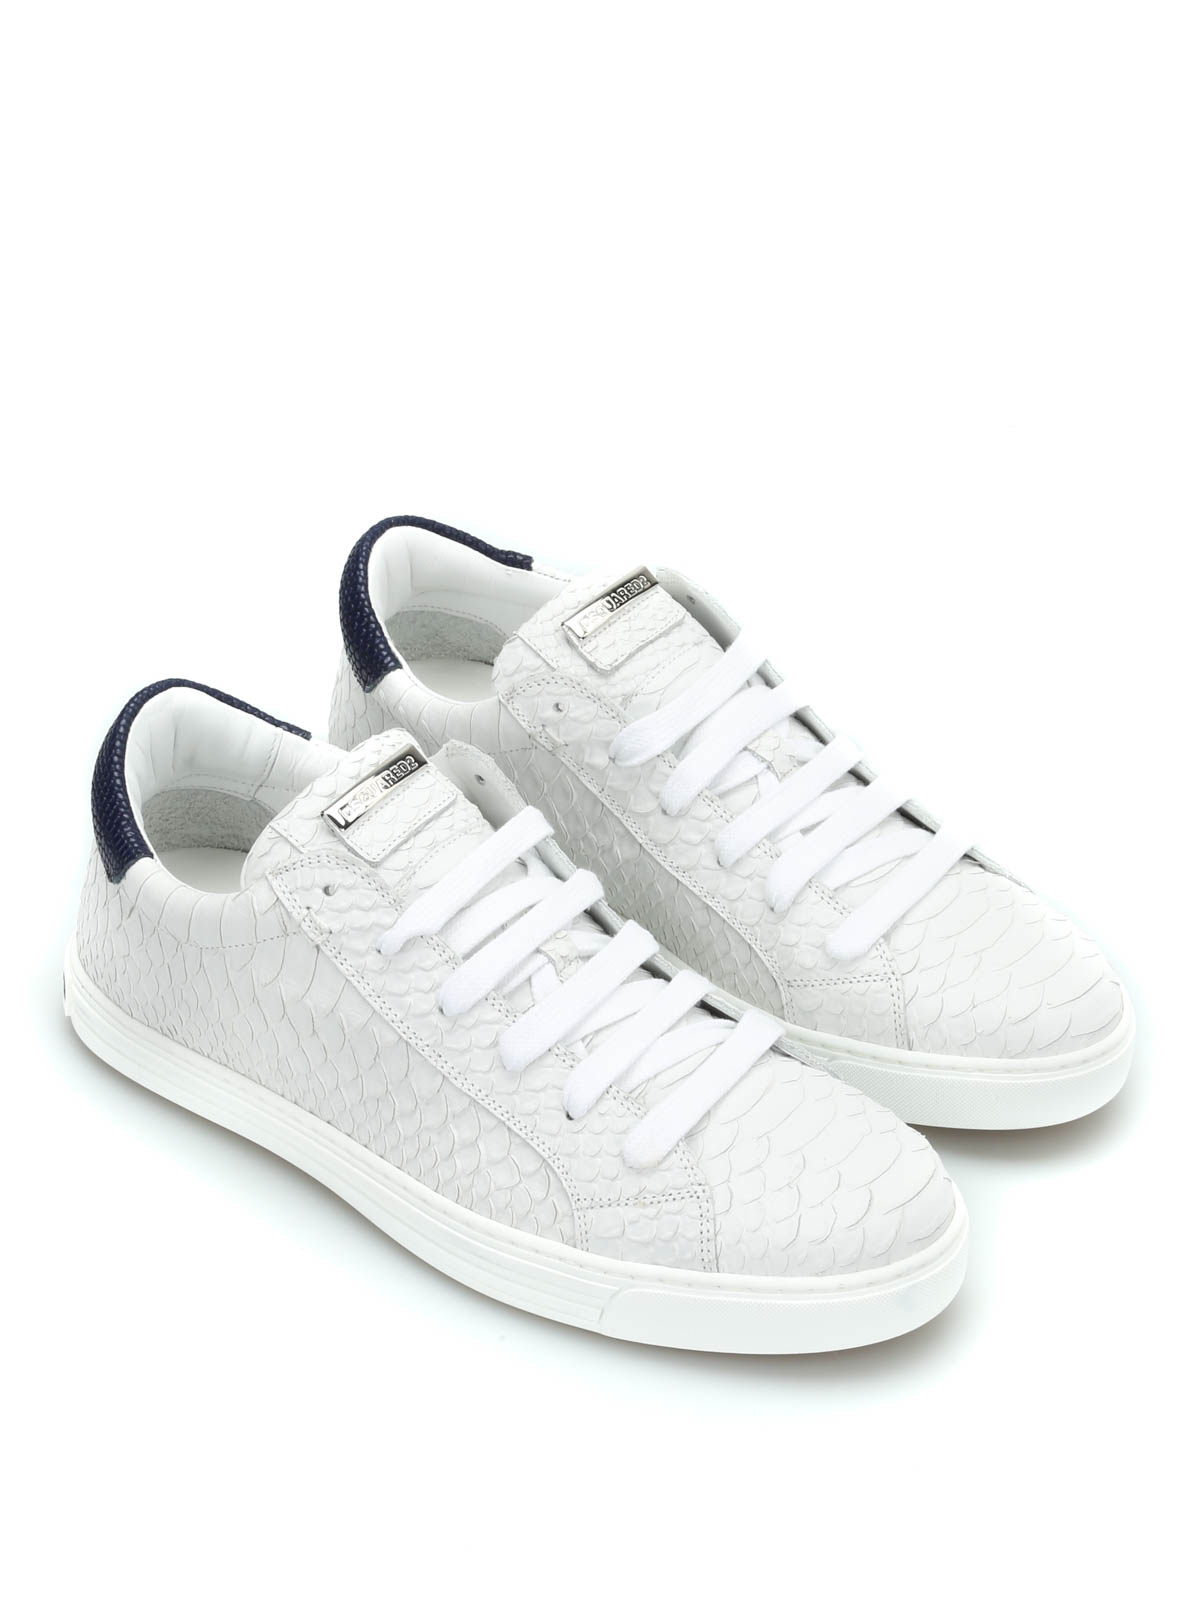 Dsquared2 - Tennis Club sneakers - trainers - S16SN103 446 M313 81f2cbdd776